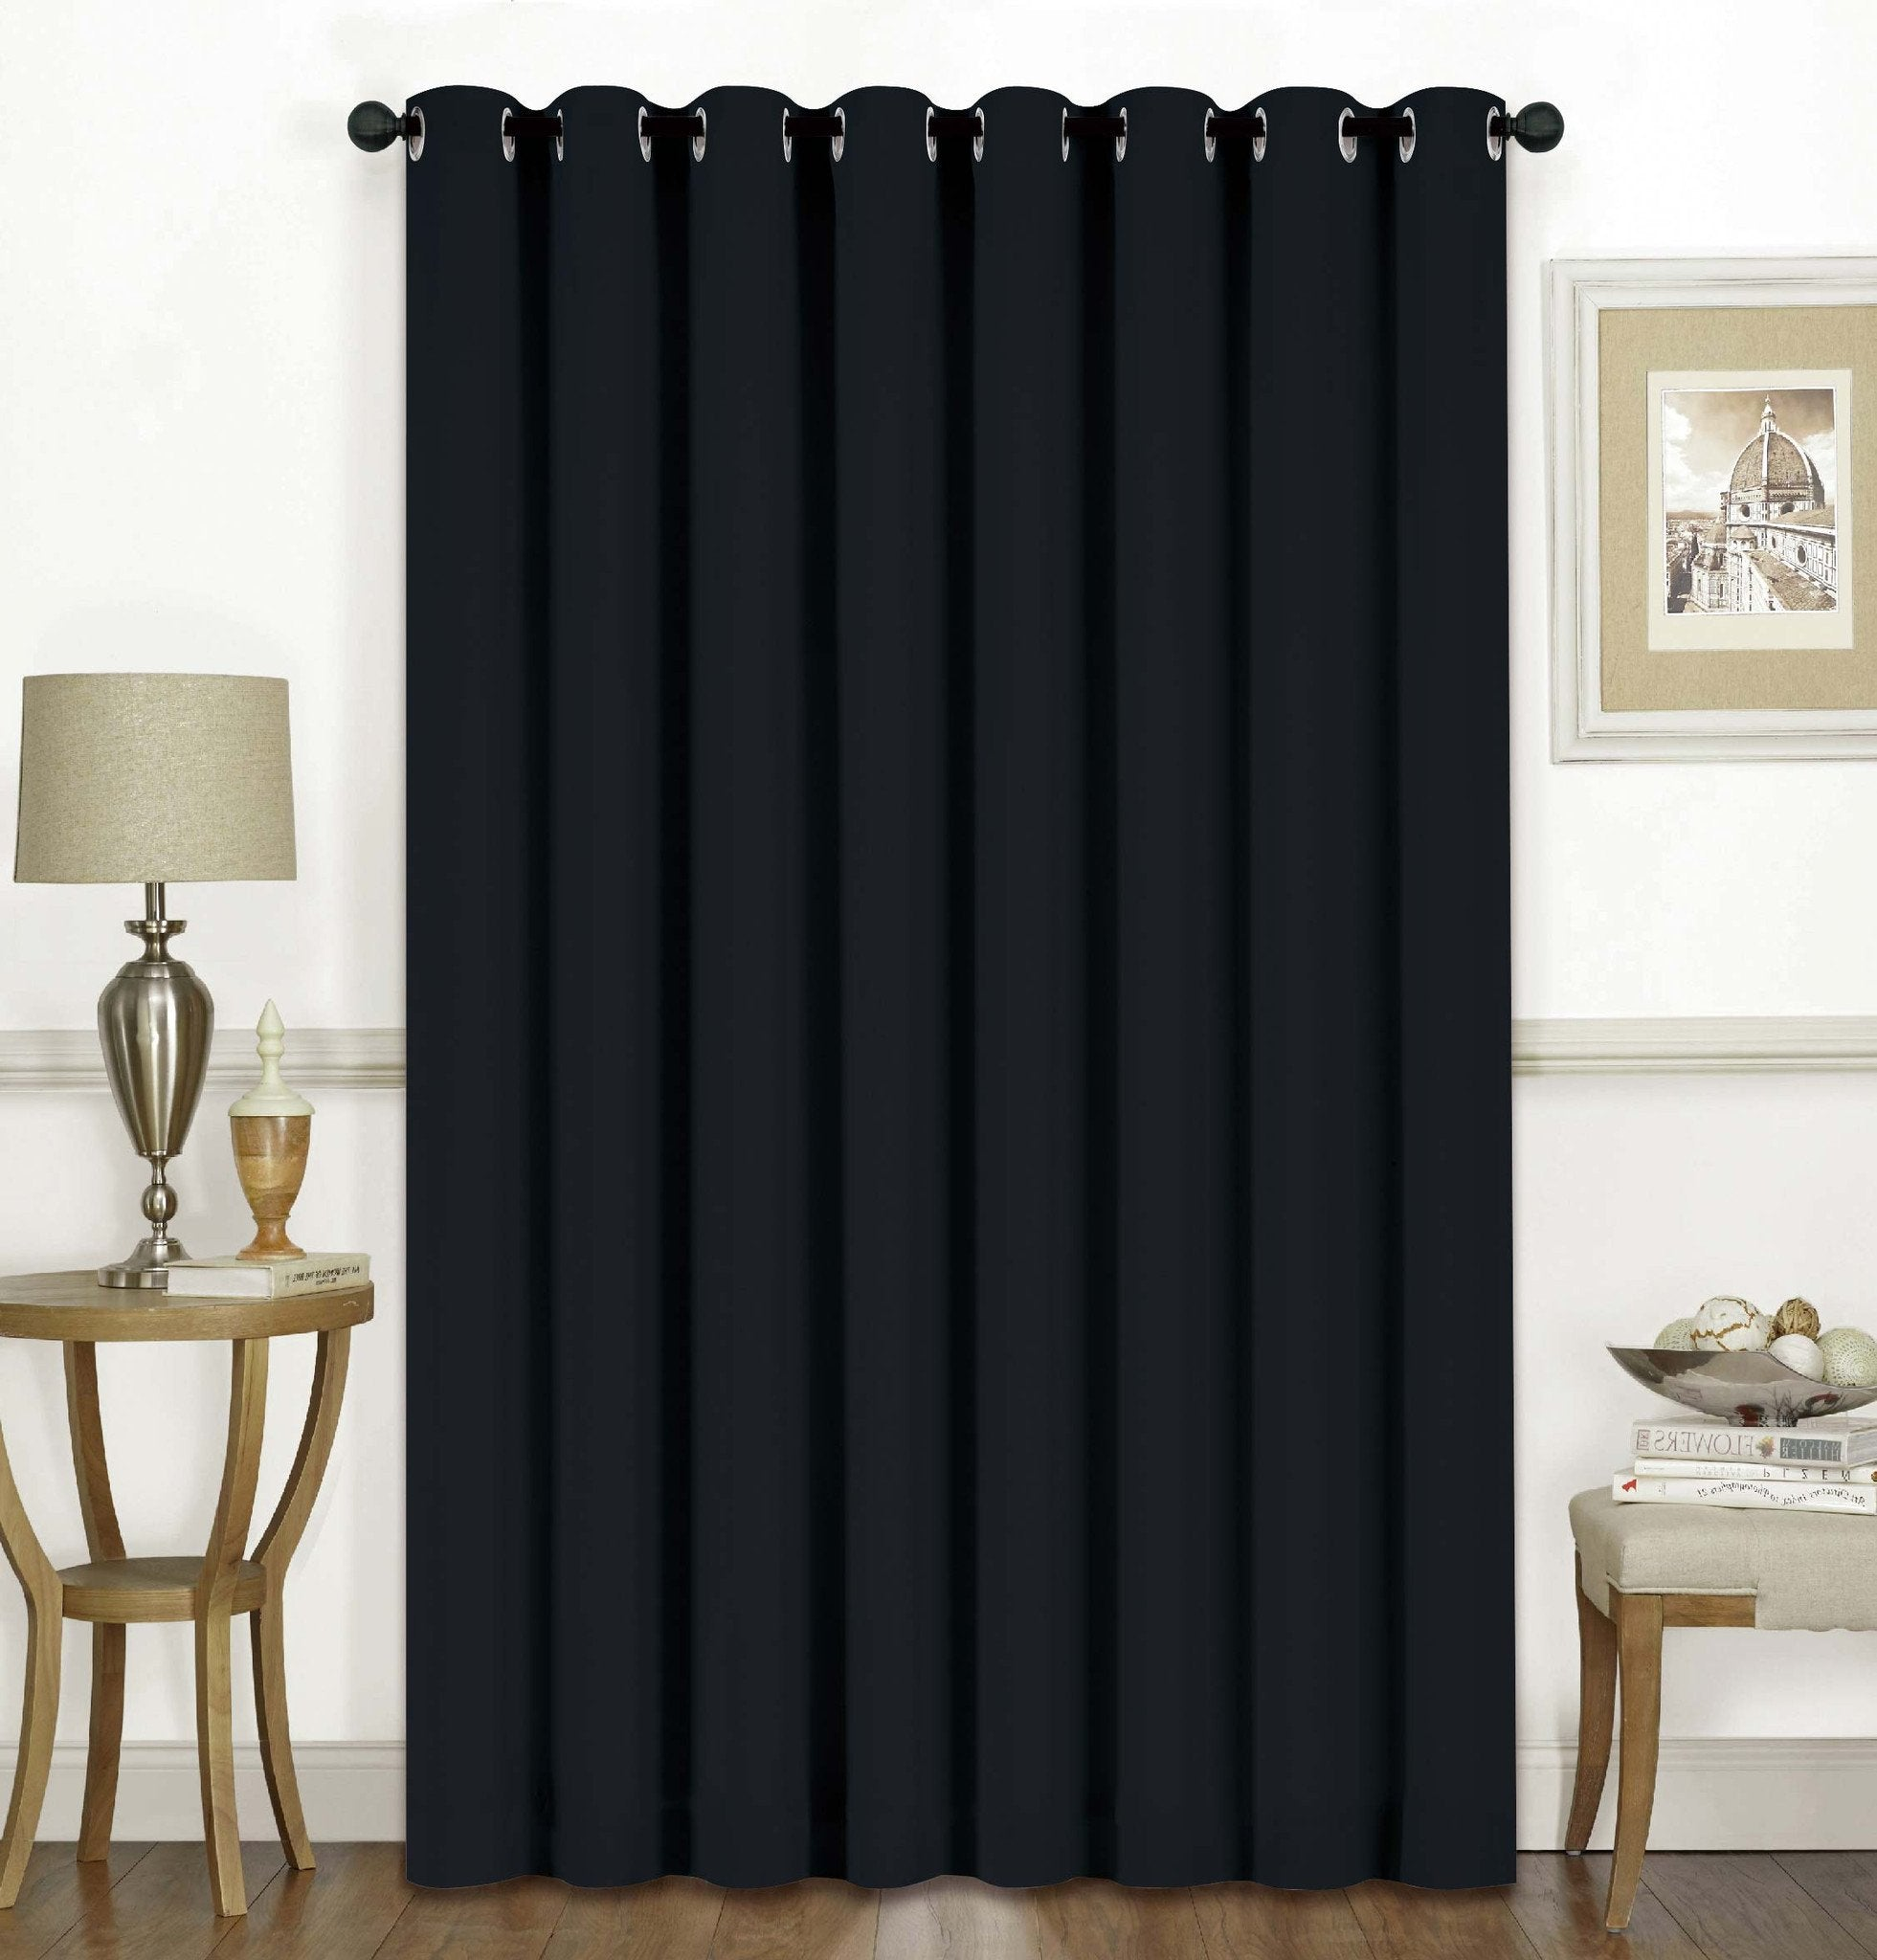 thermal blackout panel black white and curtains eclipse walmart curtain window pairs com tricia ip